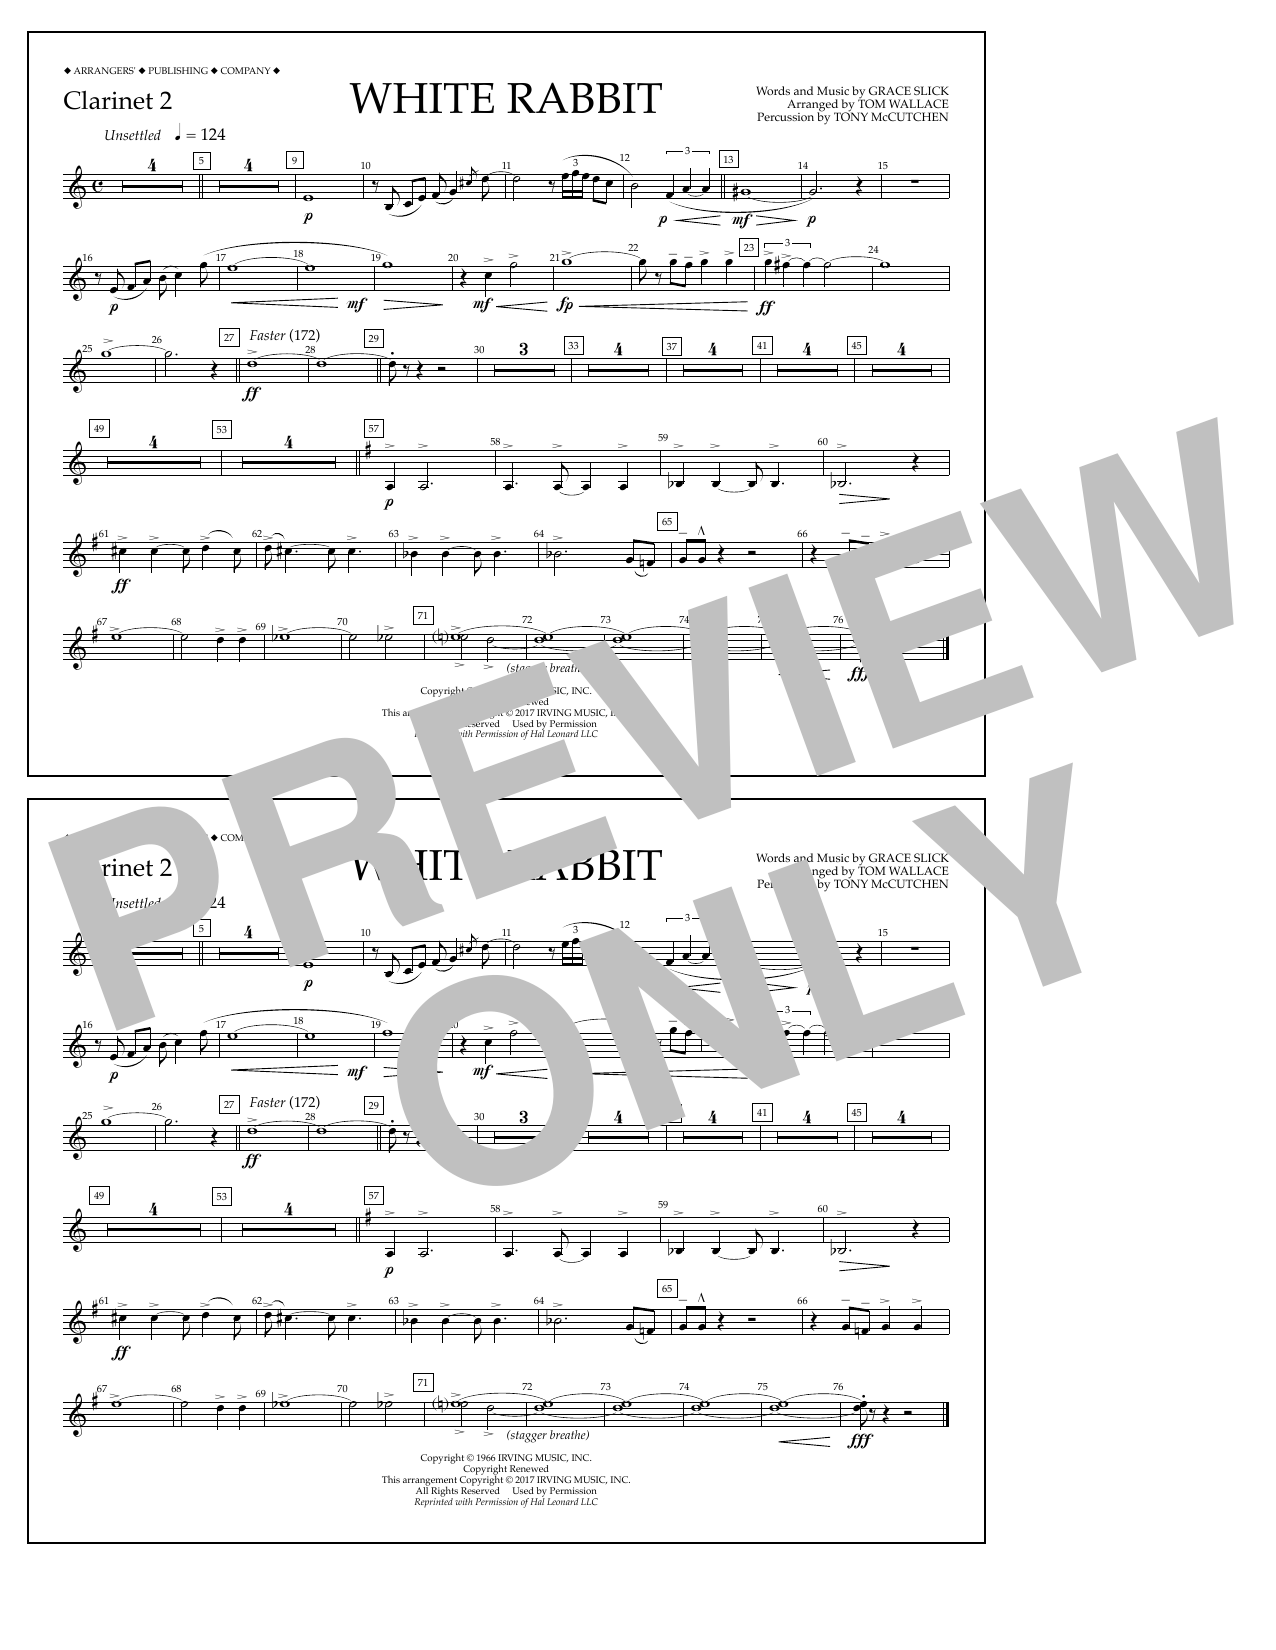 White Rabbit - Clarinet 2 Sheet Music